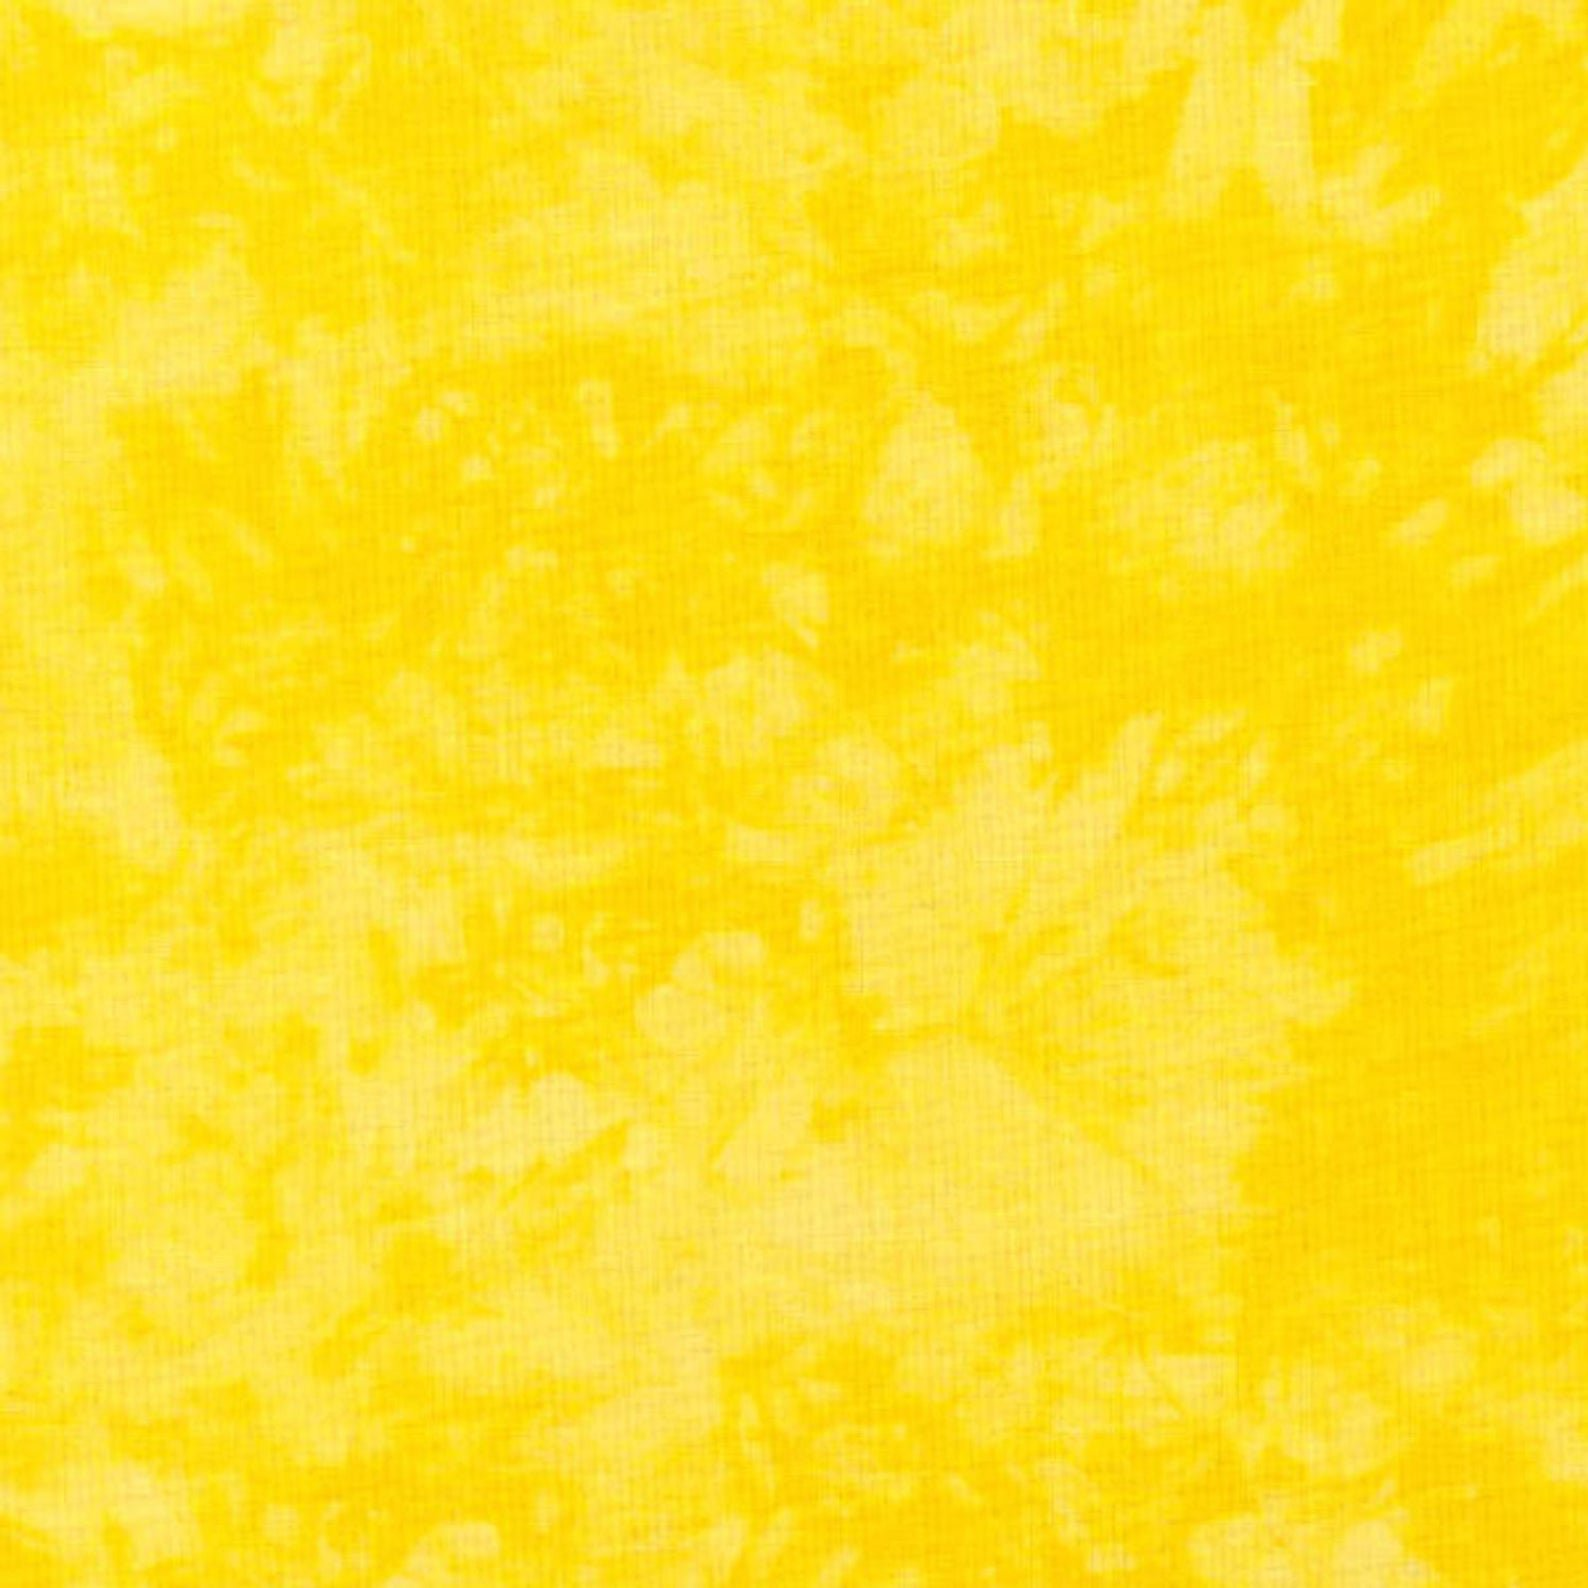 RJR quilters cotton  Hand Spray yellow 42 wide